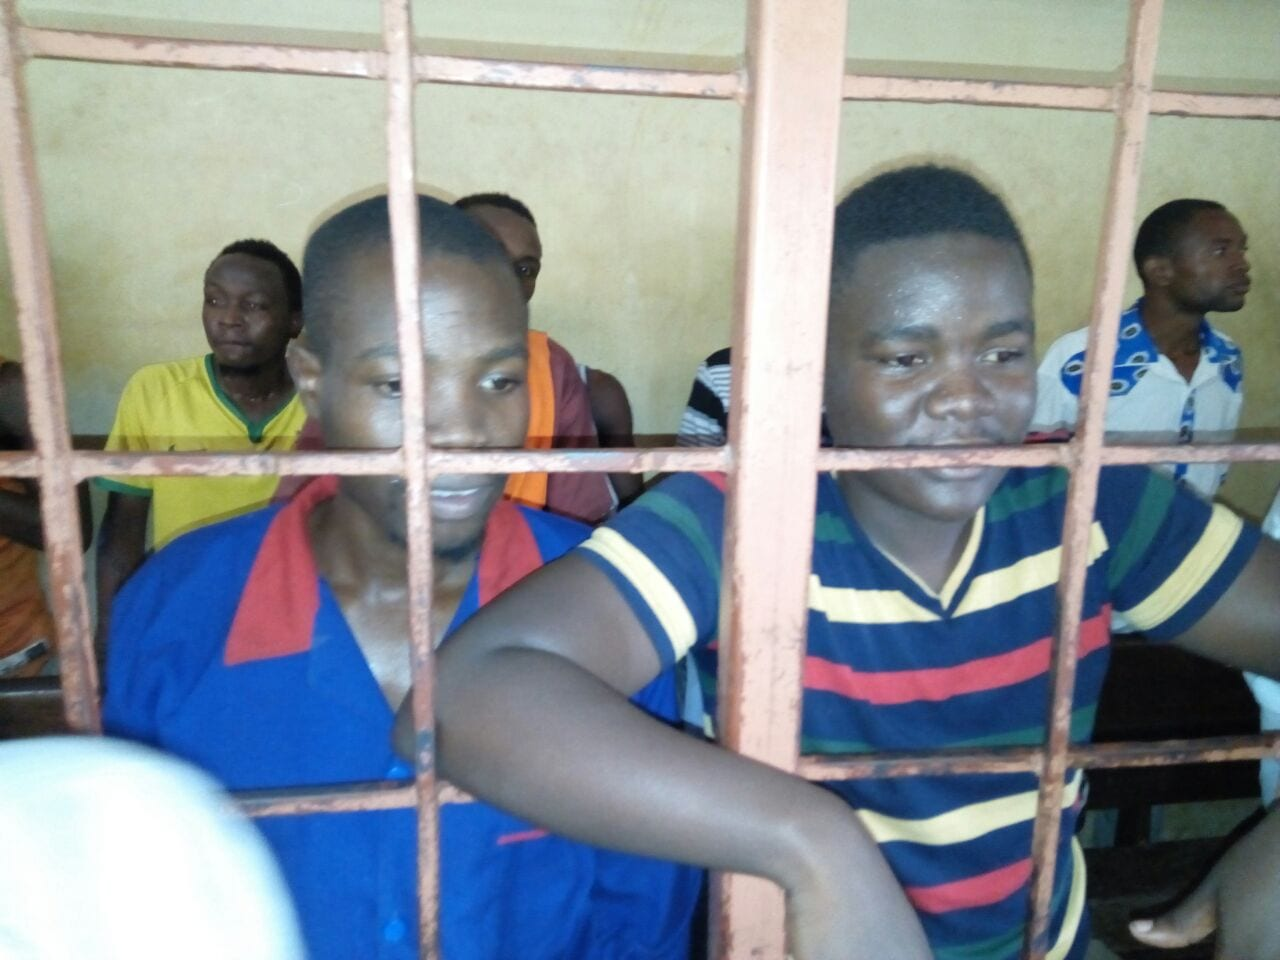 Six charged for witchcraft stunt in Mombasa